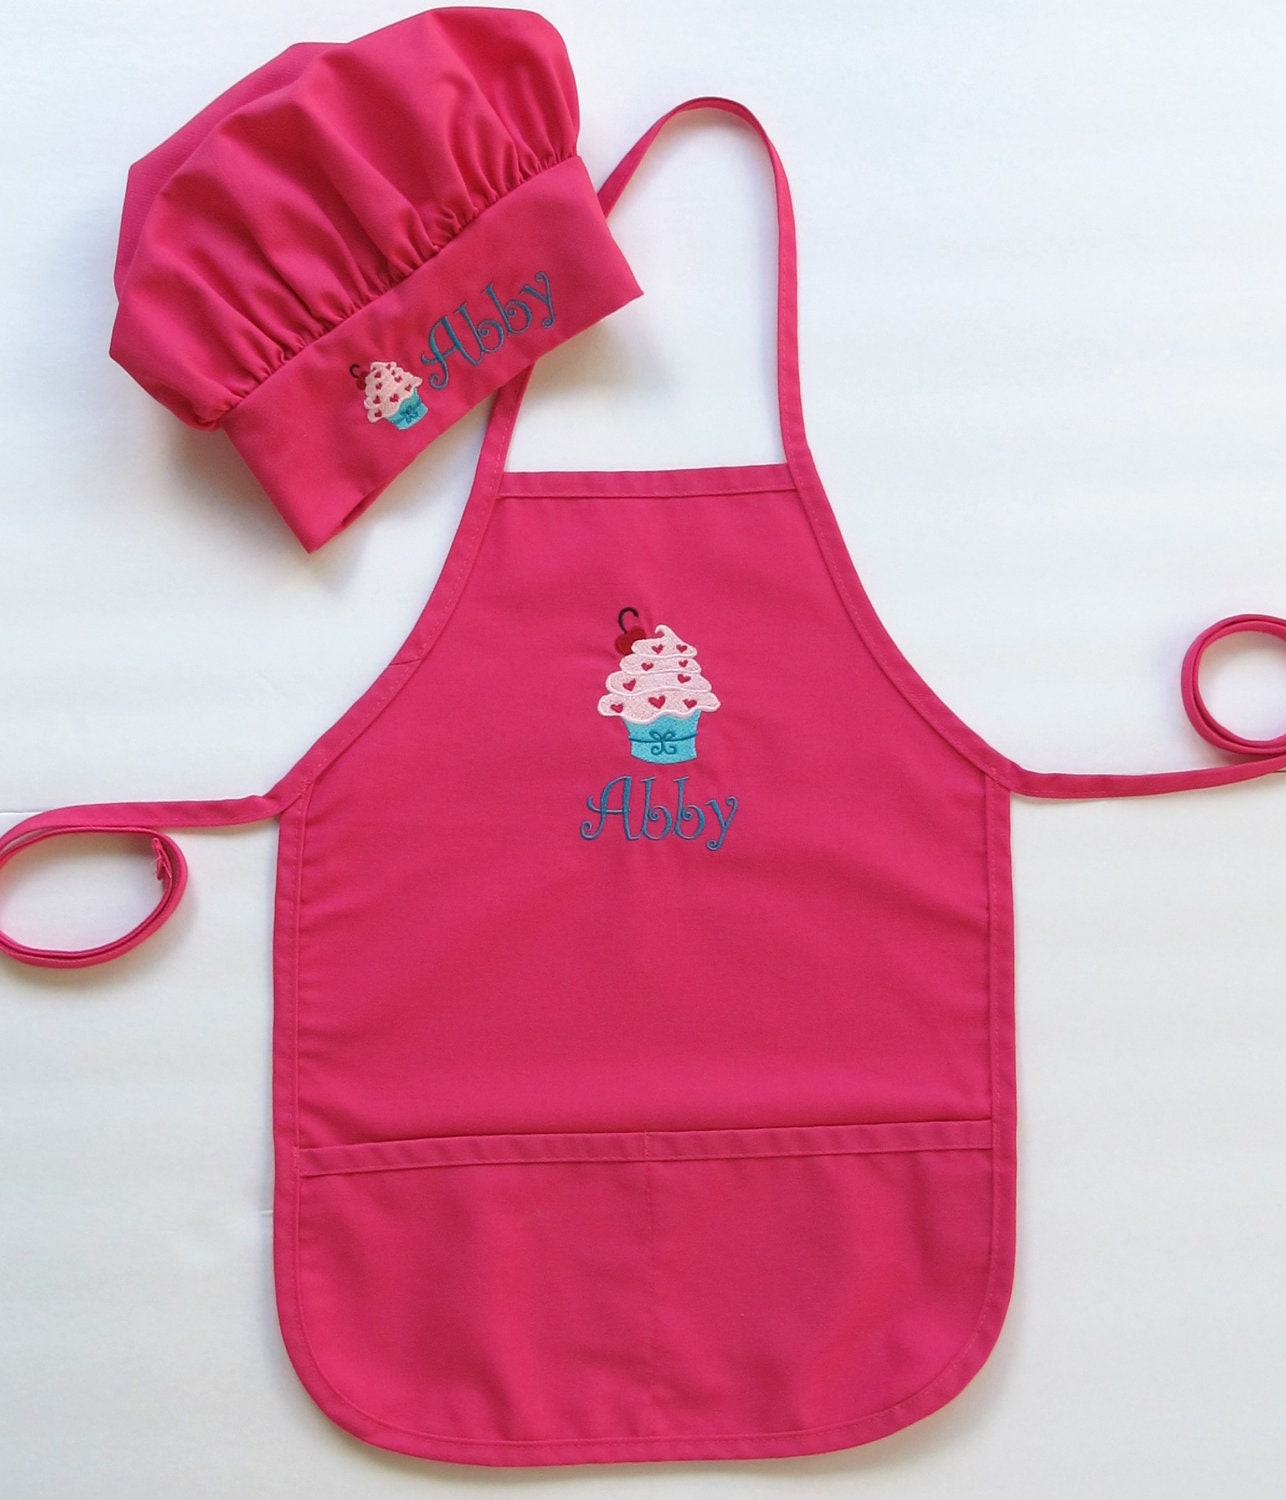 personalized apron and chef hat for kids childrens. Black Bedroom Furniture Sets. Home Design Ideas